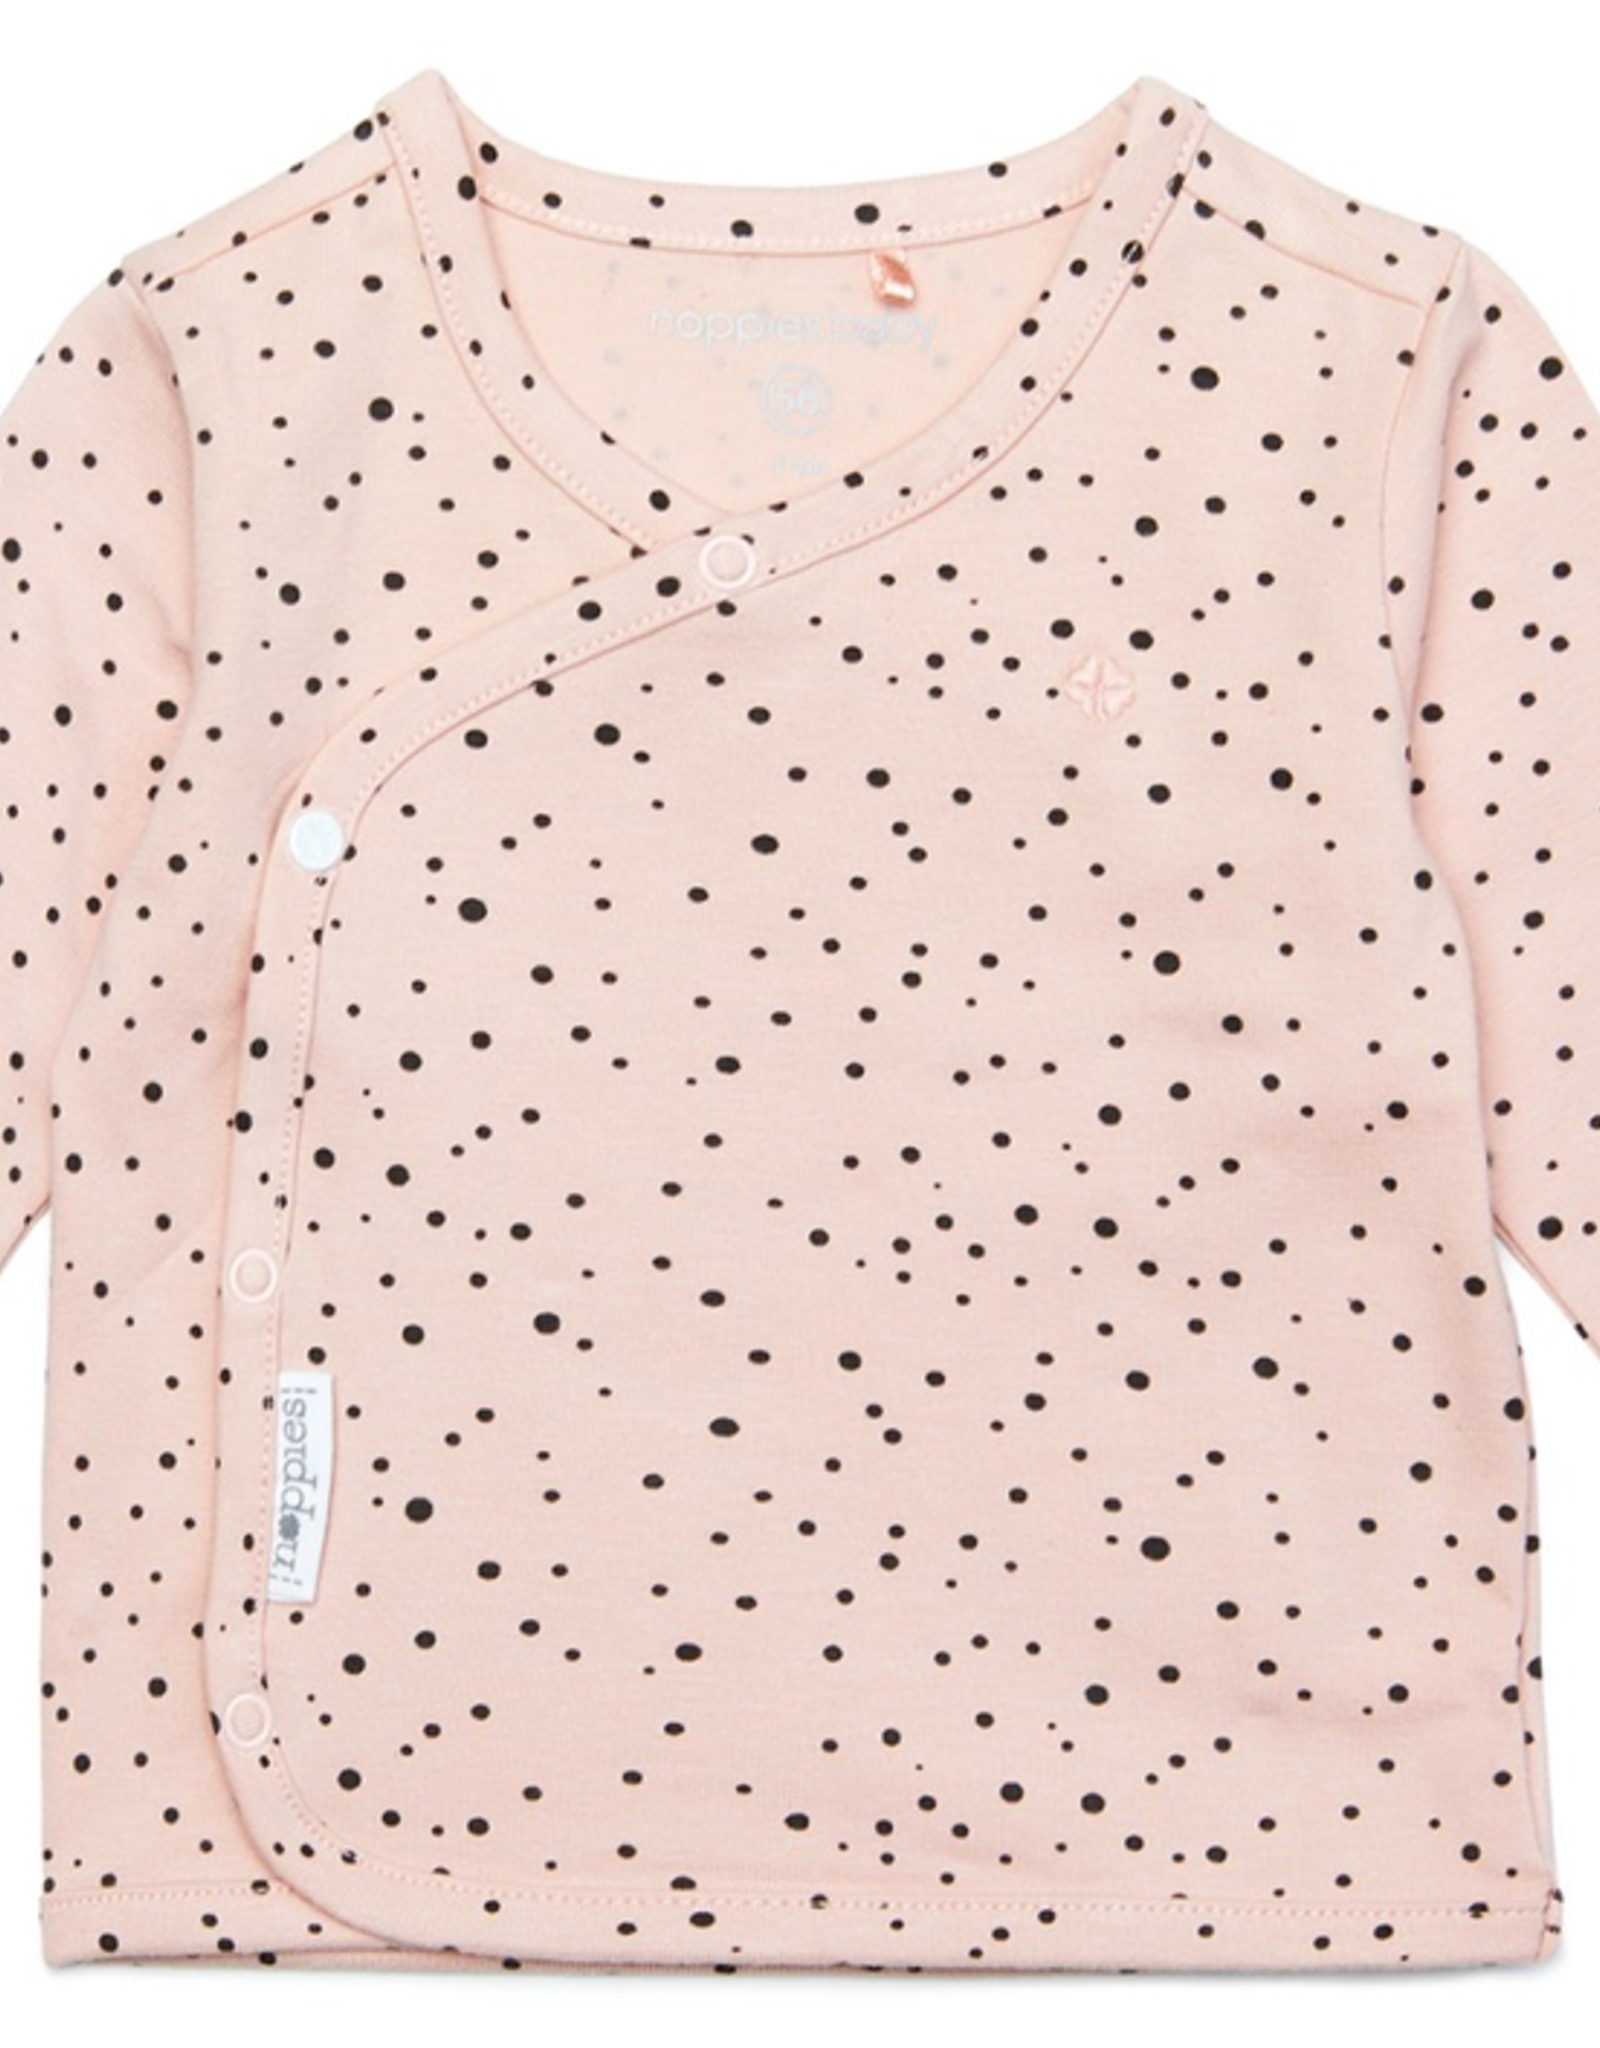 Noppies Kids Long Sleeve Lyoni Top for Baby in Peach Skin